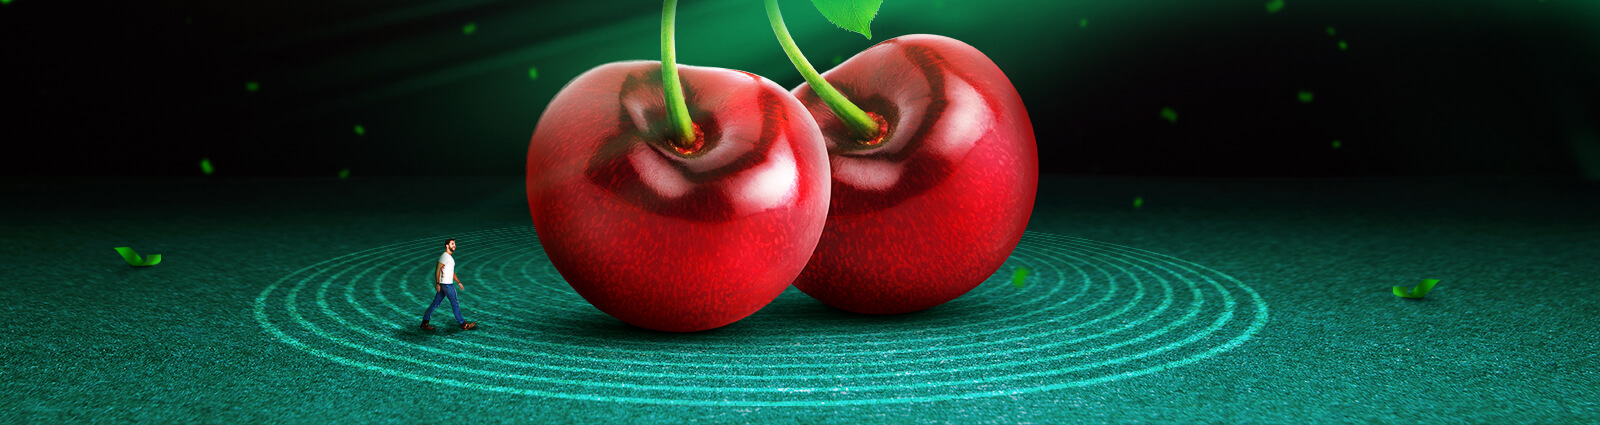 promo-page-Cherries-Unibet-250k-2019-UB-Promo-Page-Banners